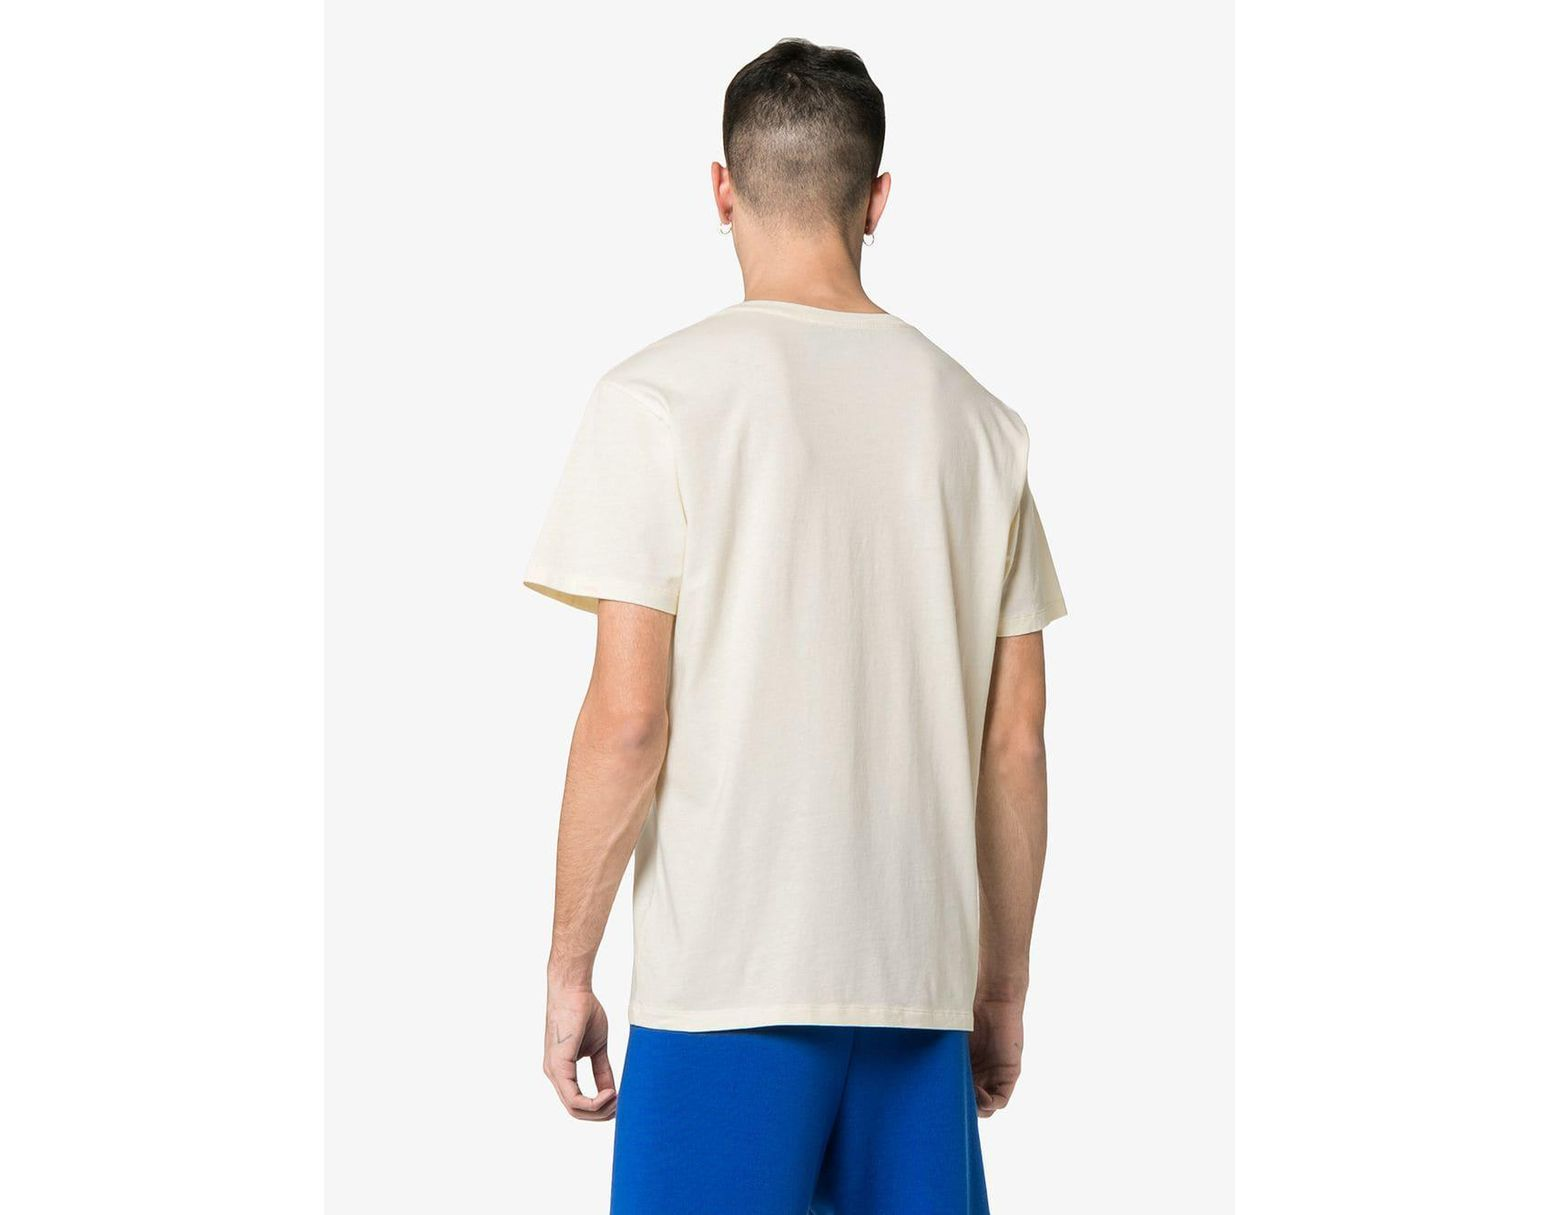 2403c492b5d Lyst - Gucci Winged Jockey Guccy Logo T-shirt in White for Men - Save 29%